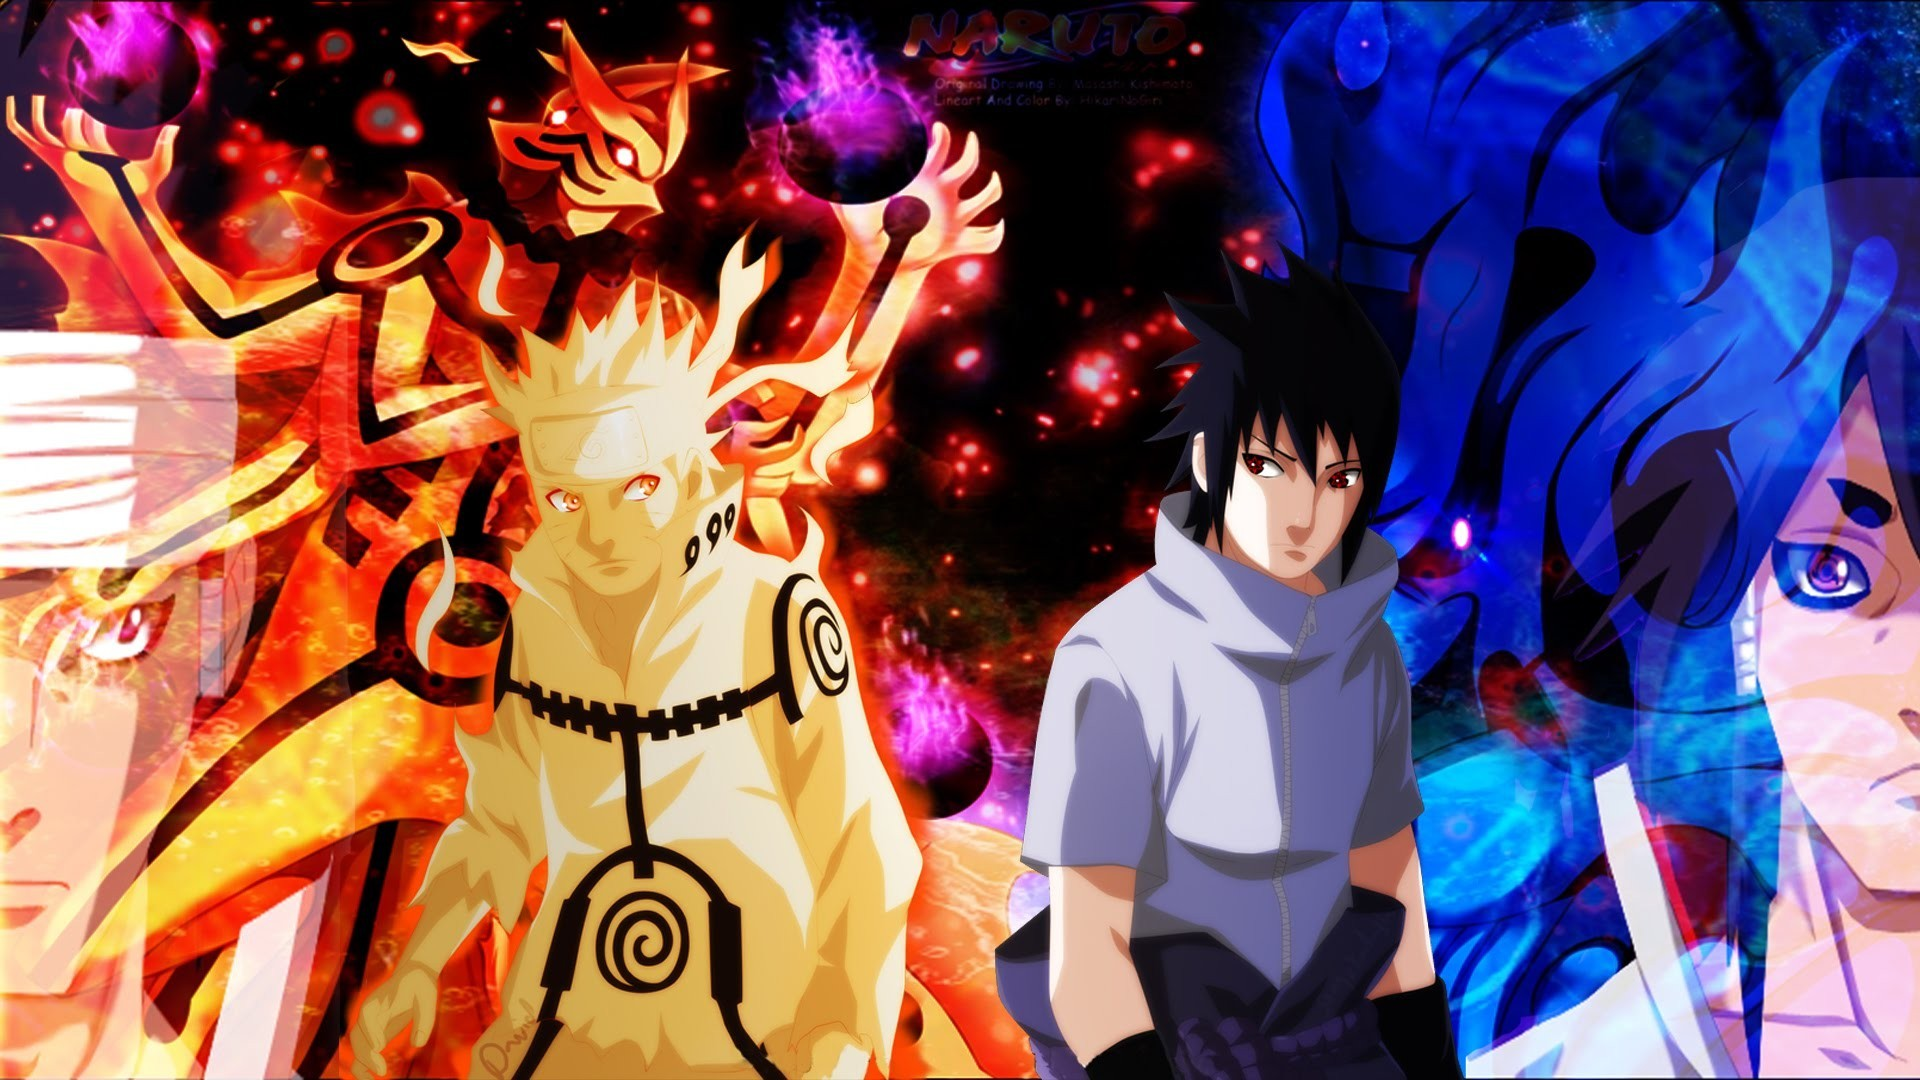 Must see Wallpaper Naruto Windows 10 - 812263-naruto-shippuden-wallpaper-sasuke-1920x1080-windows-10  Snapshot.jpg